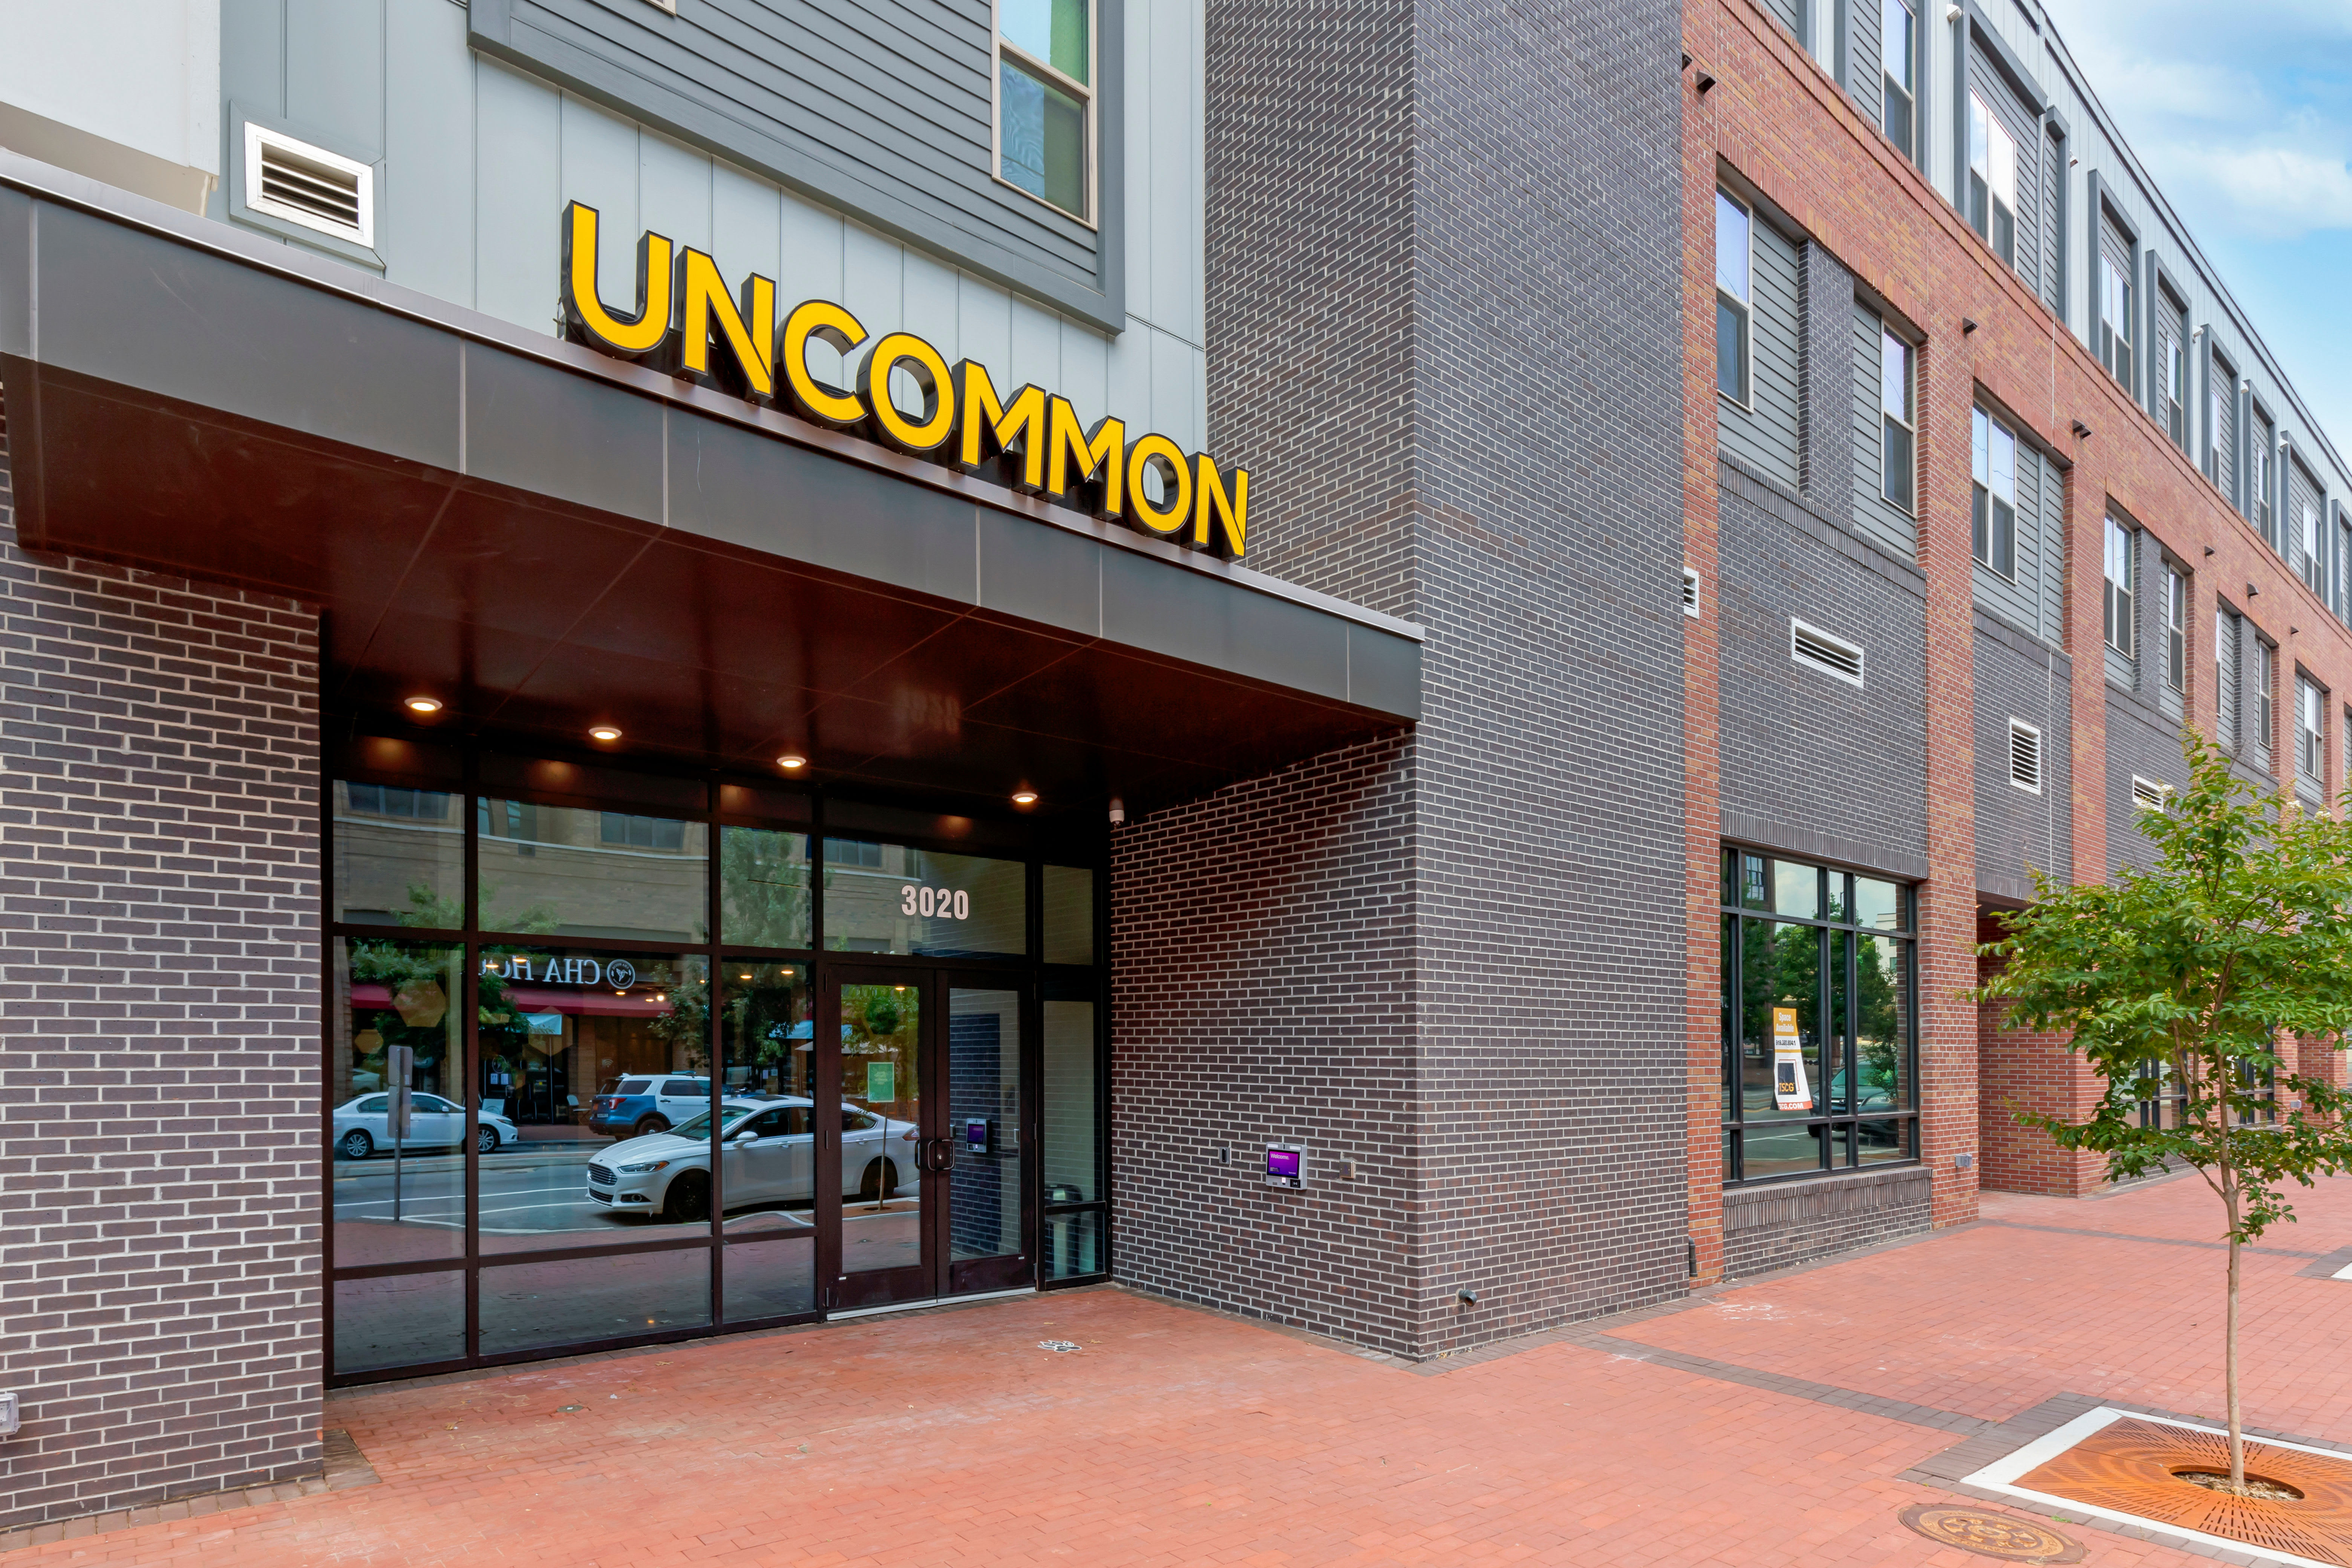 Entrance of UNCOMMON Raleigh's building in Raleigh, North Carolina